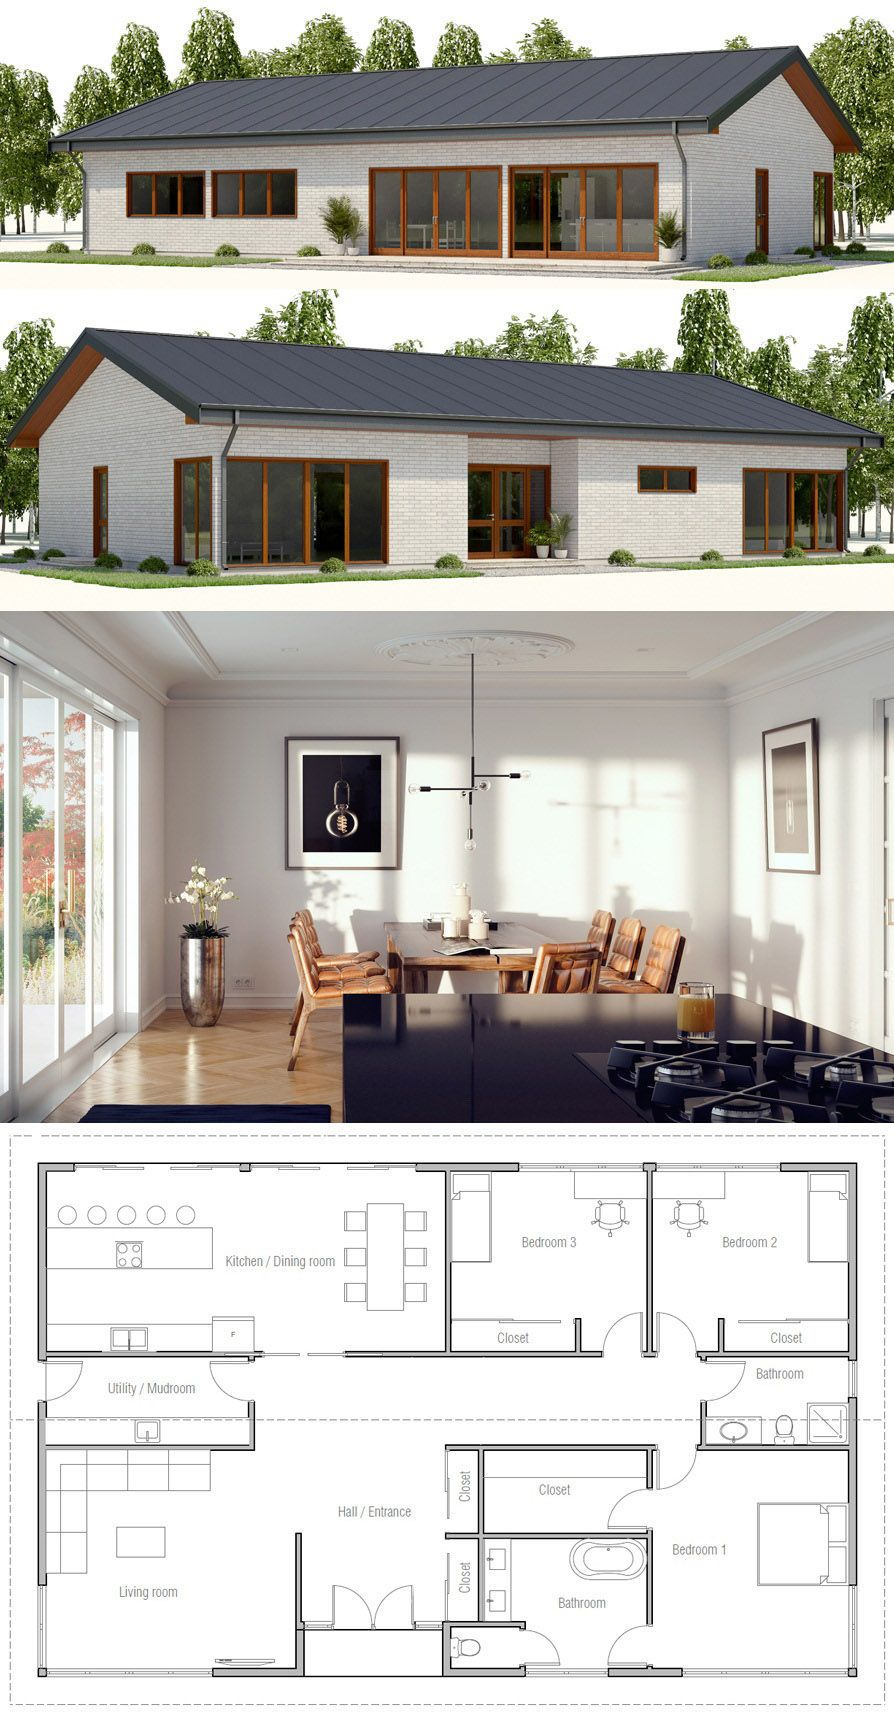 House designs home plans homedecor adhouseplans also falusi haz rh pinterest